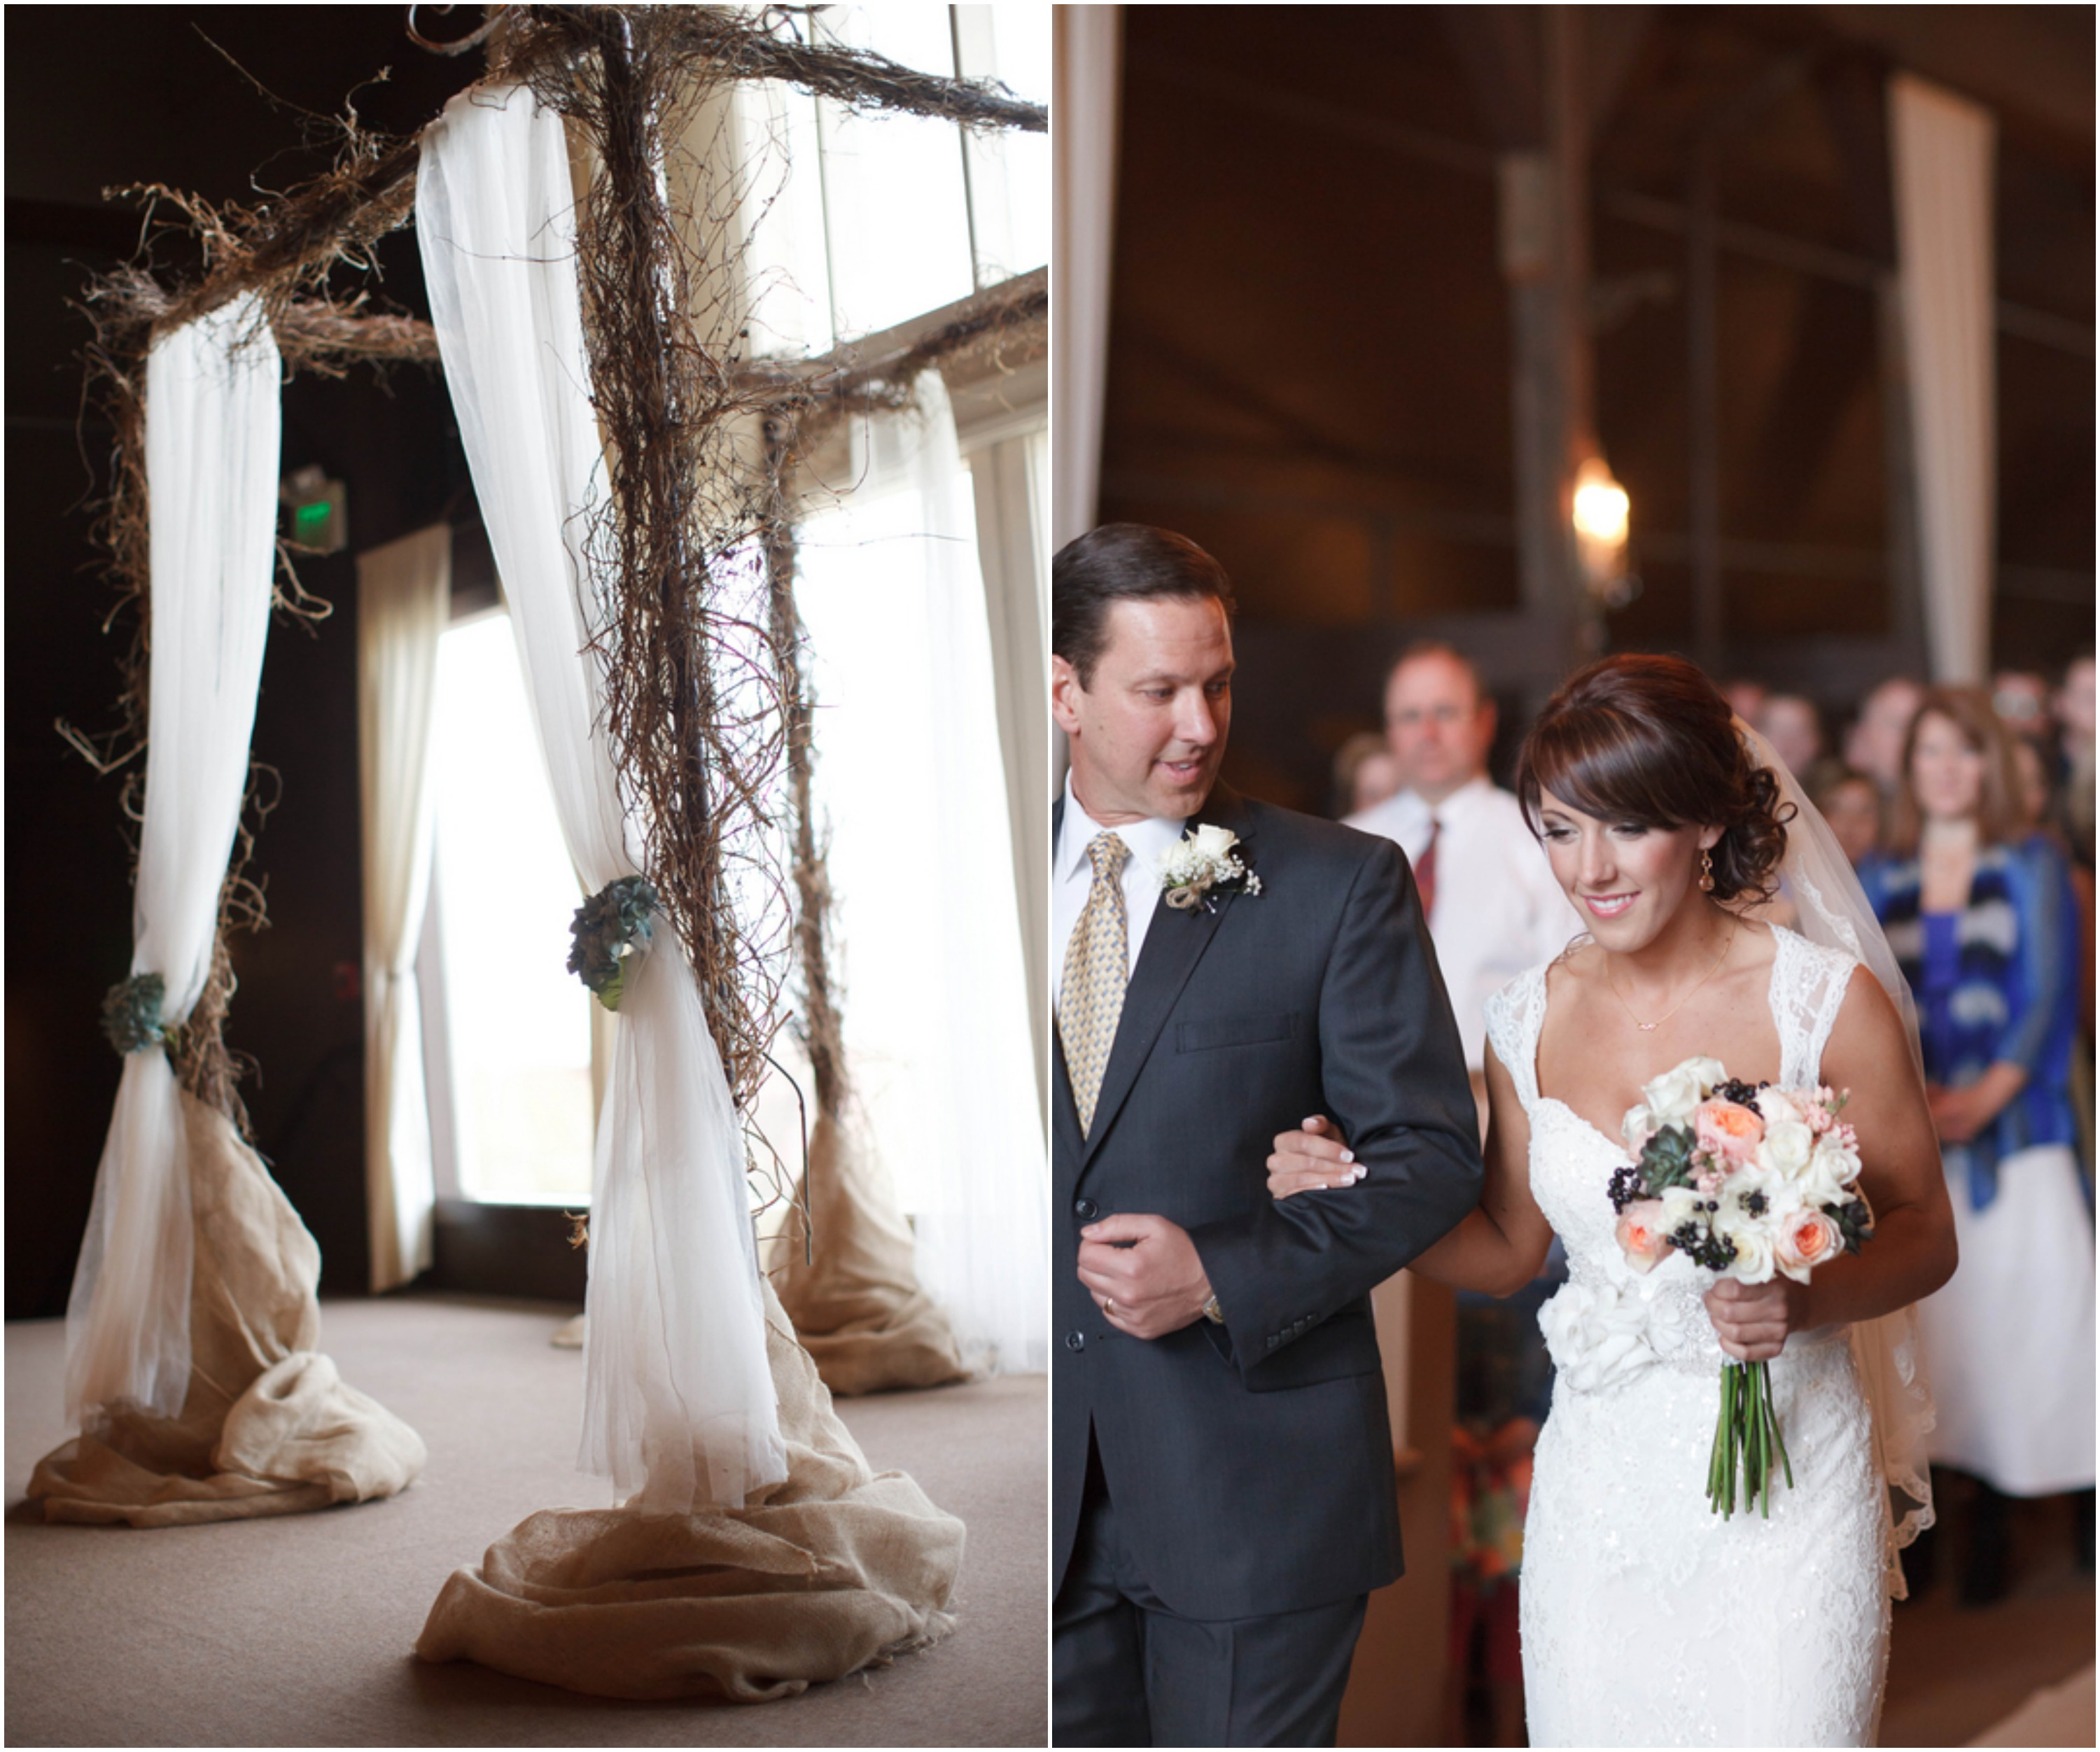 Rustic Wedding Arch With Burlap: Romantic Rustic Country Wedding